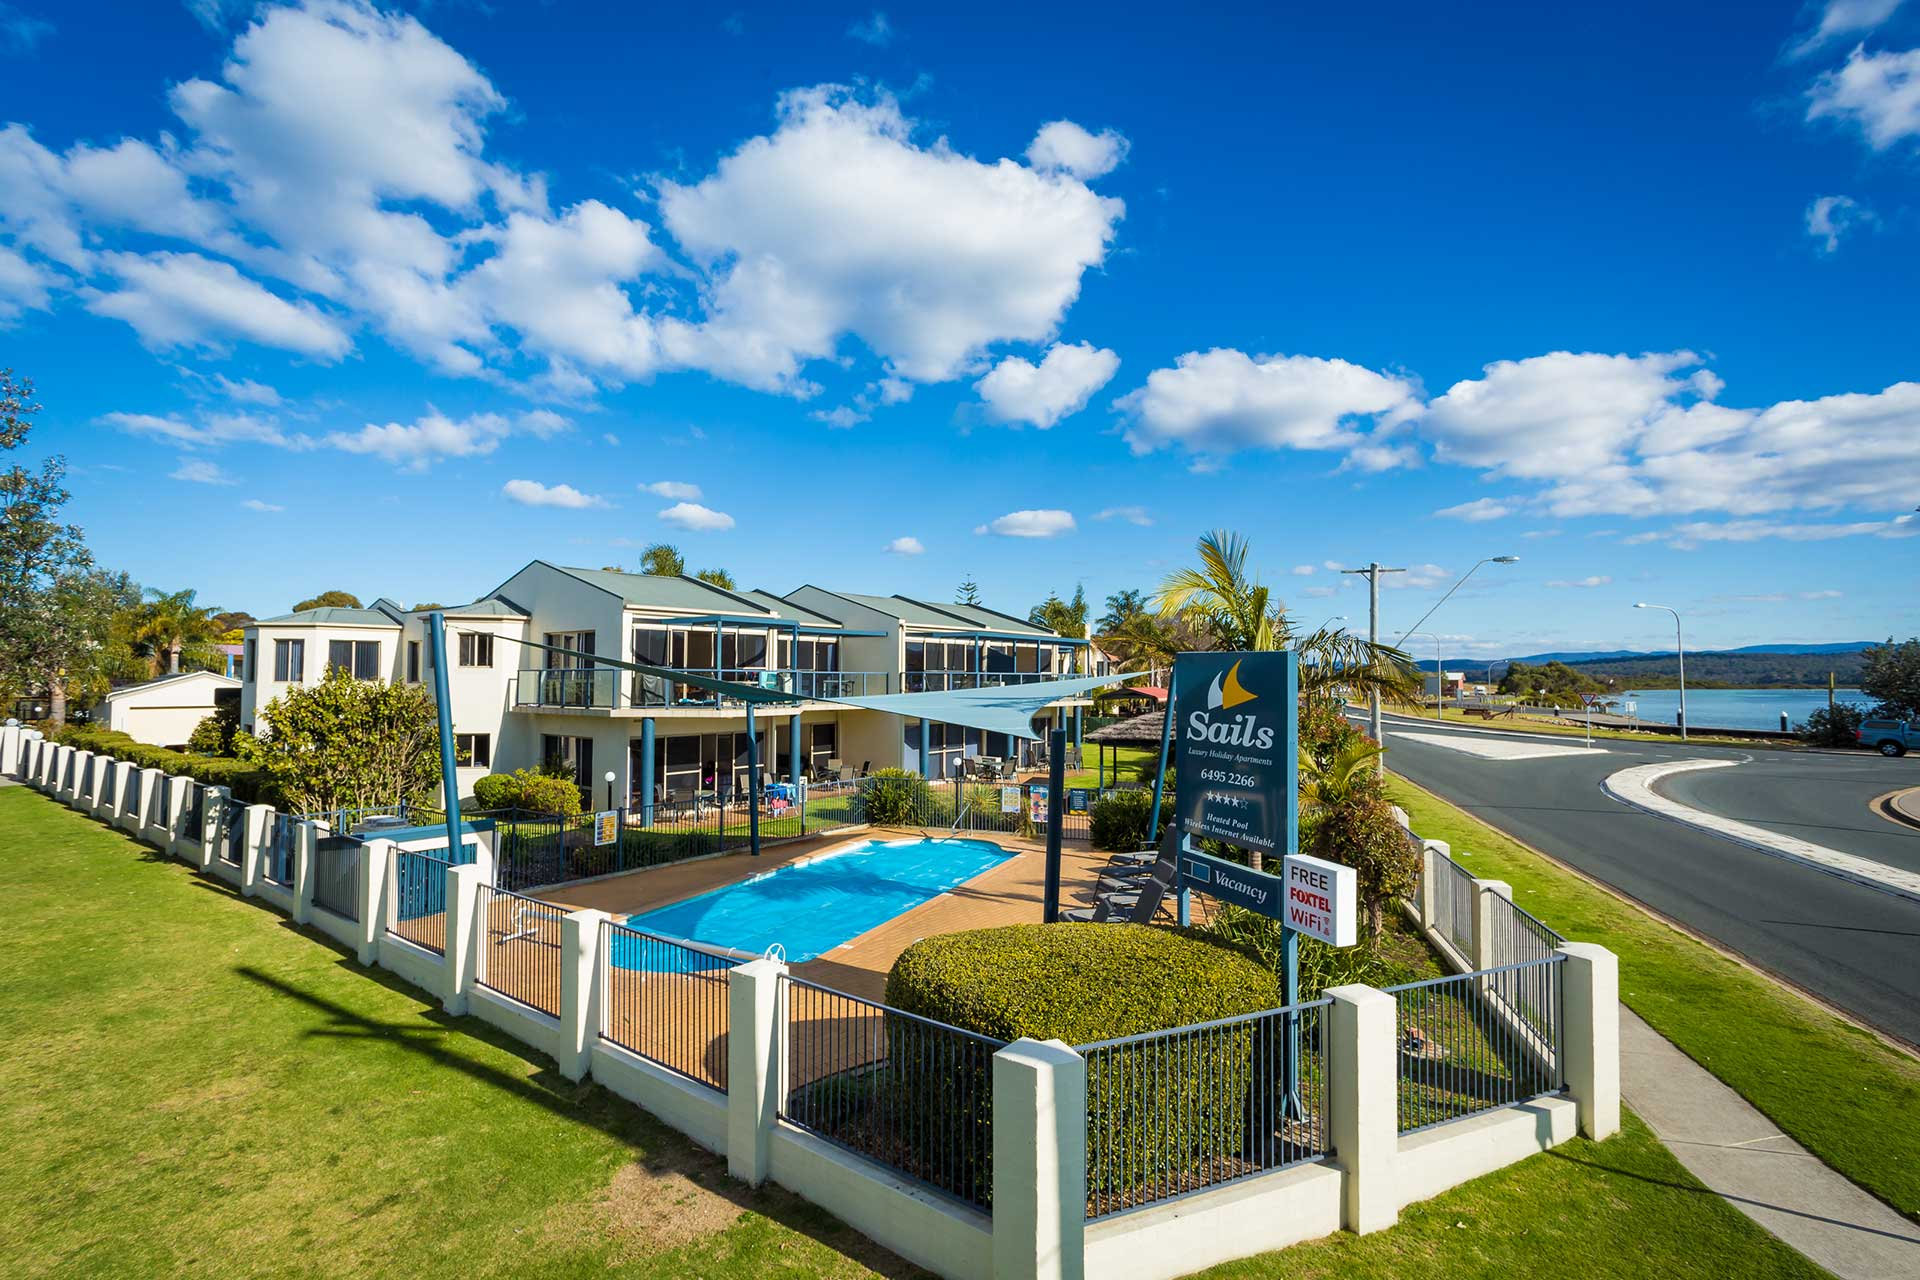 Sails Apartments - Luxury Self Contained Accommodation Merimbula